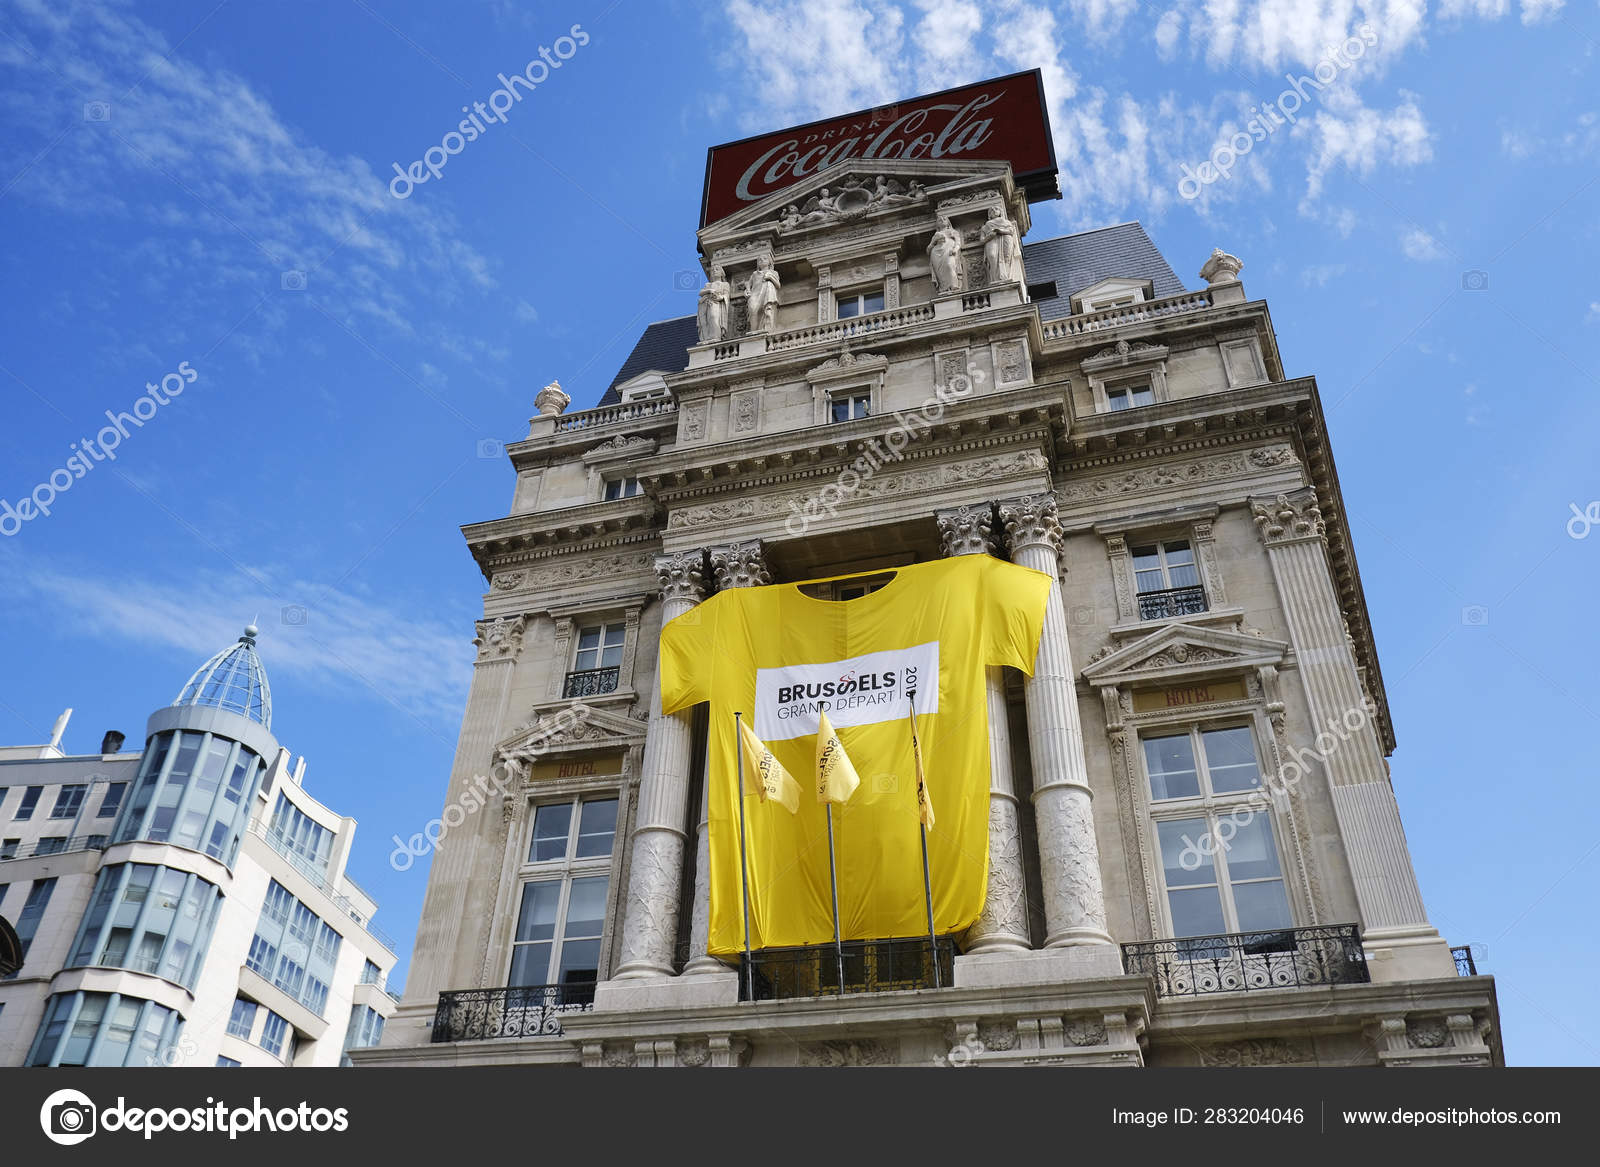 Giant Tour France Jersey Seen Facade Hotel Central Brussels